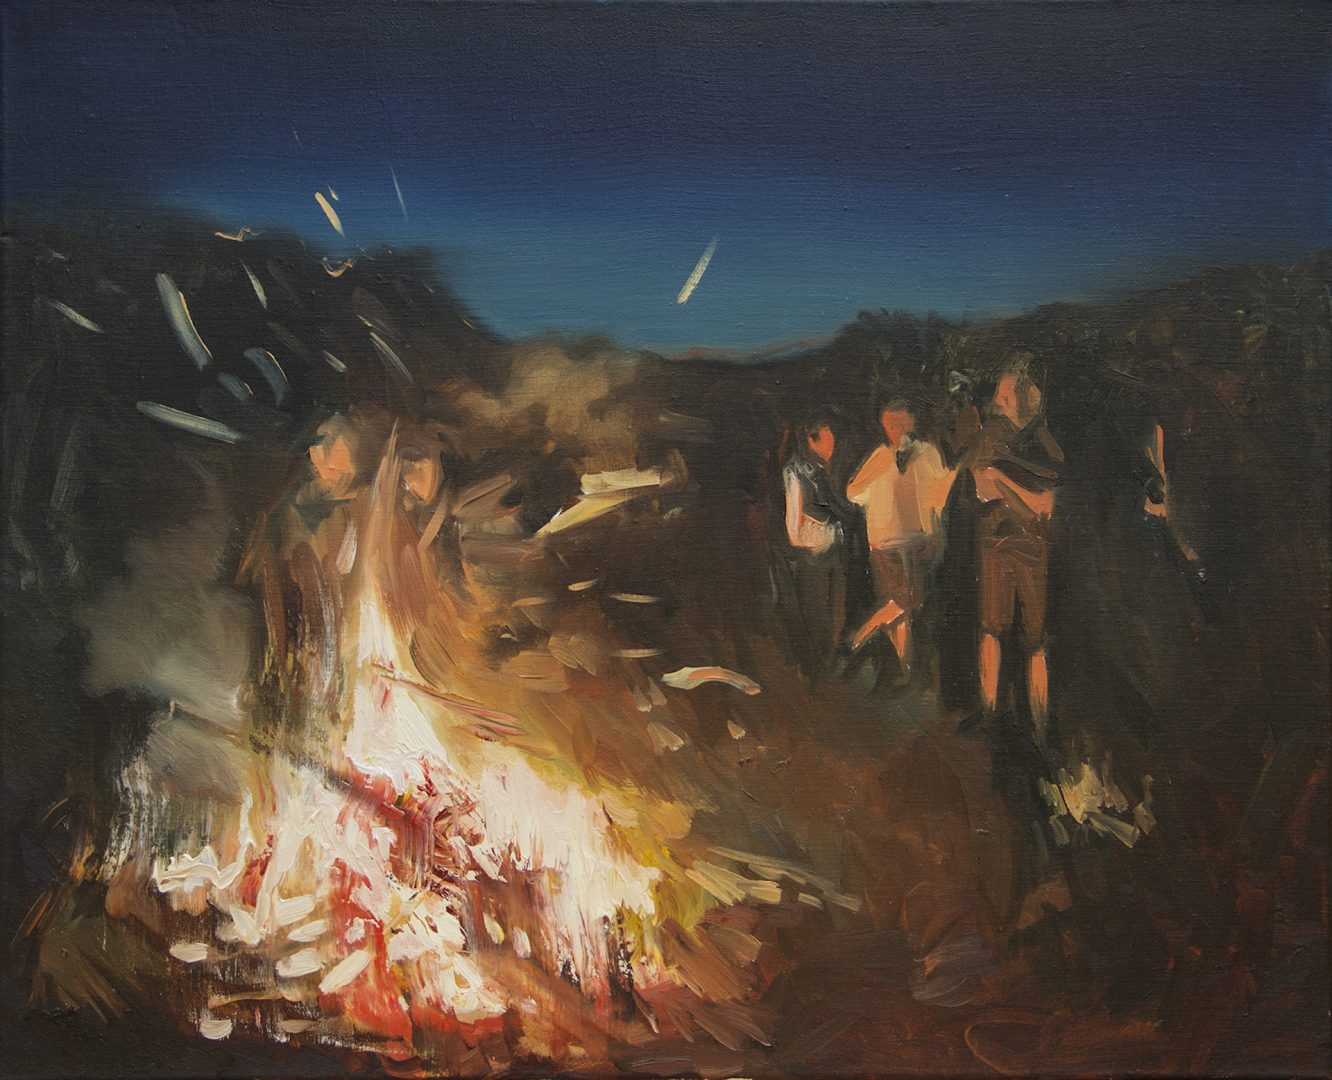 Lorella Paleni, 21 - The Ritual 2, Oil on canvas, 45x55 cm